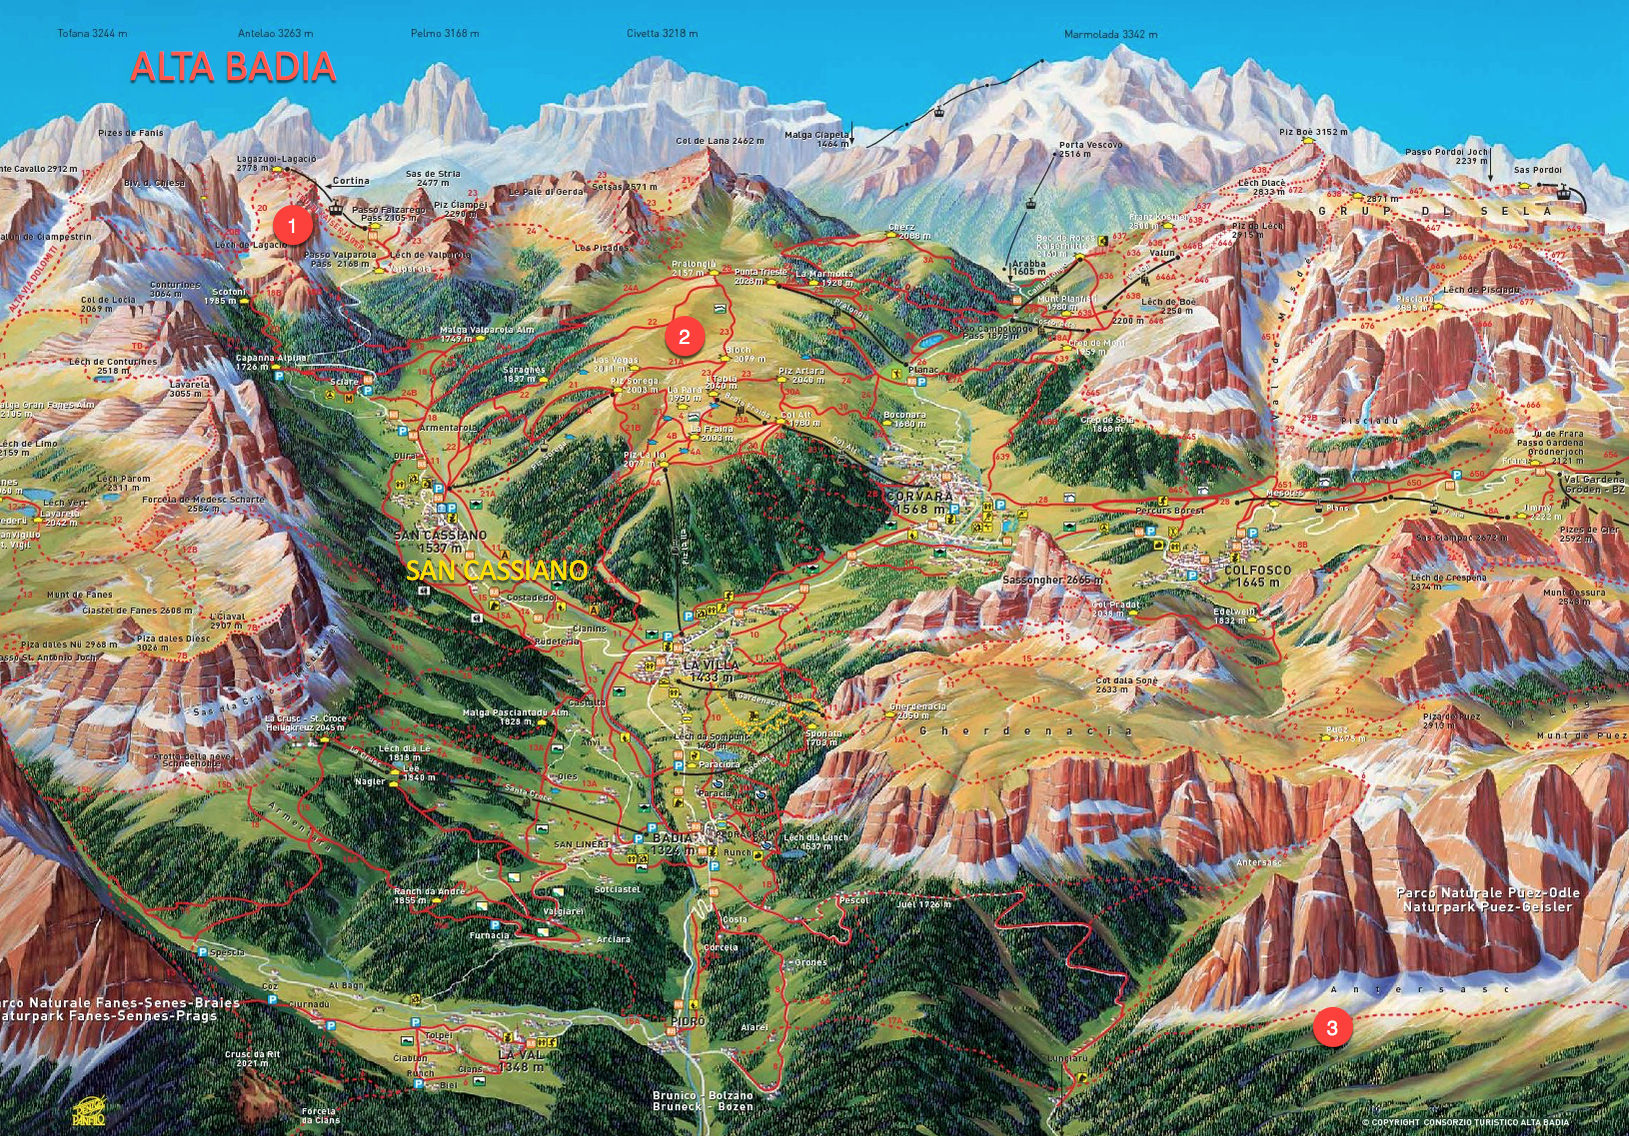 Alta Badia Summer Hiking Map